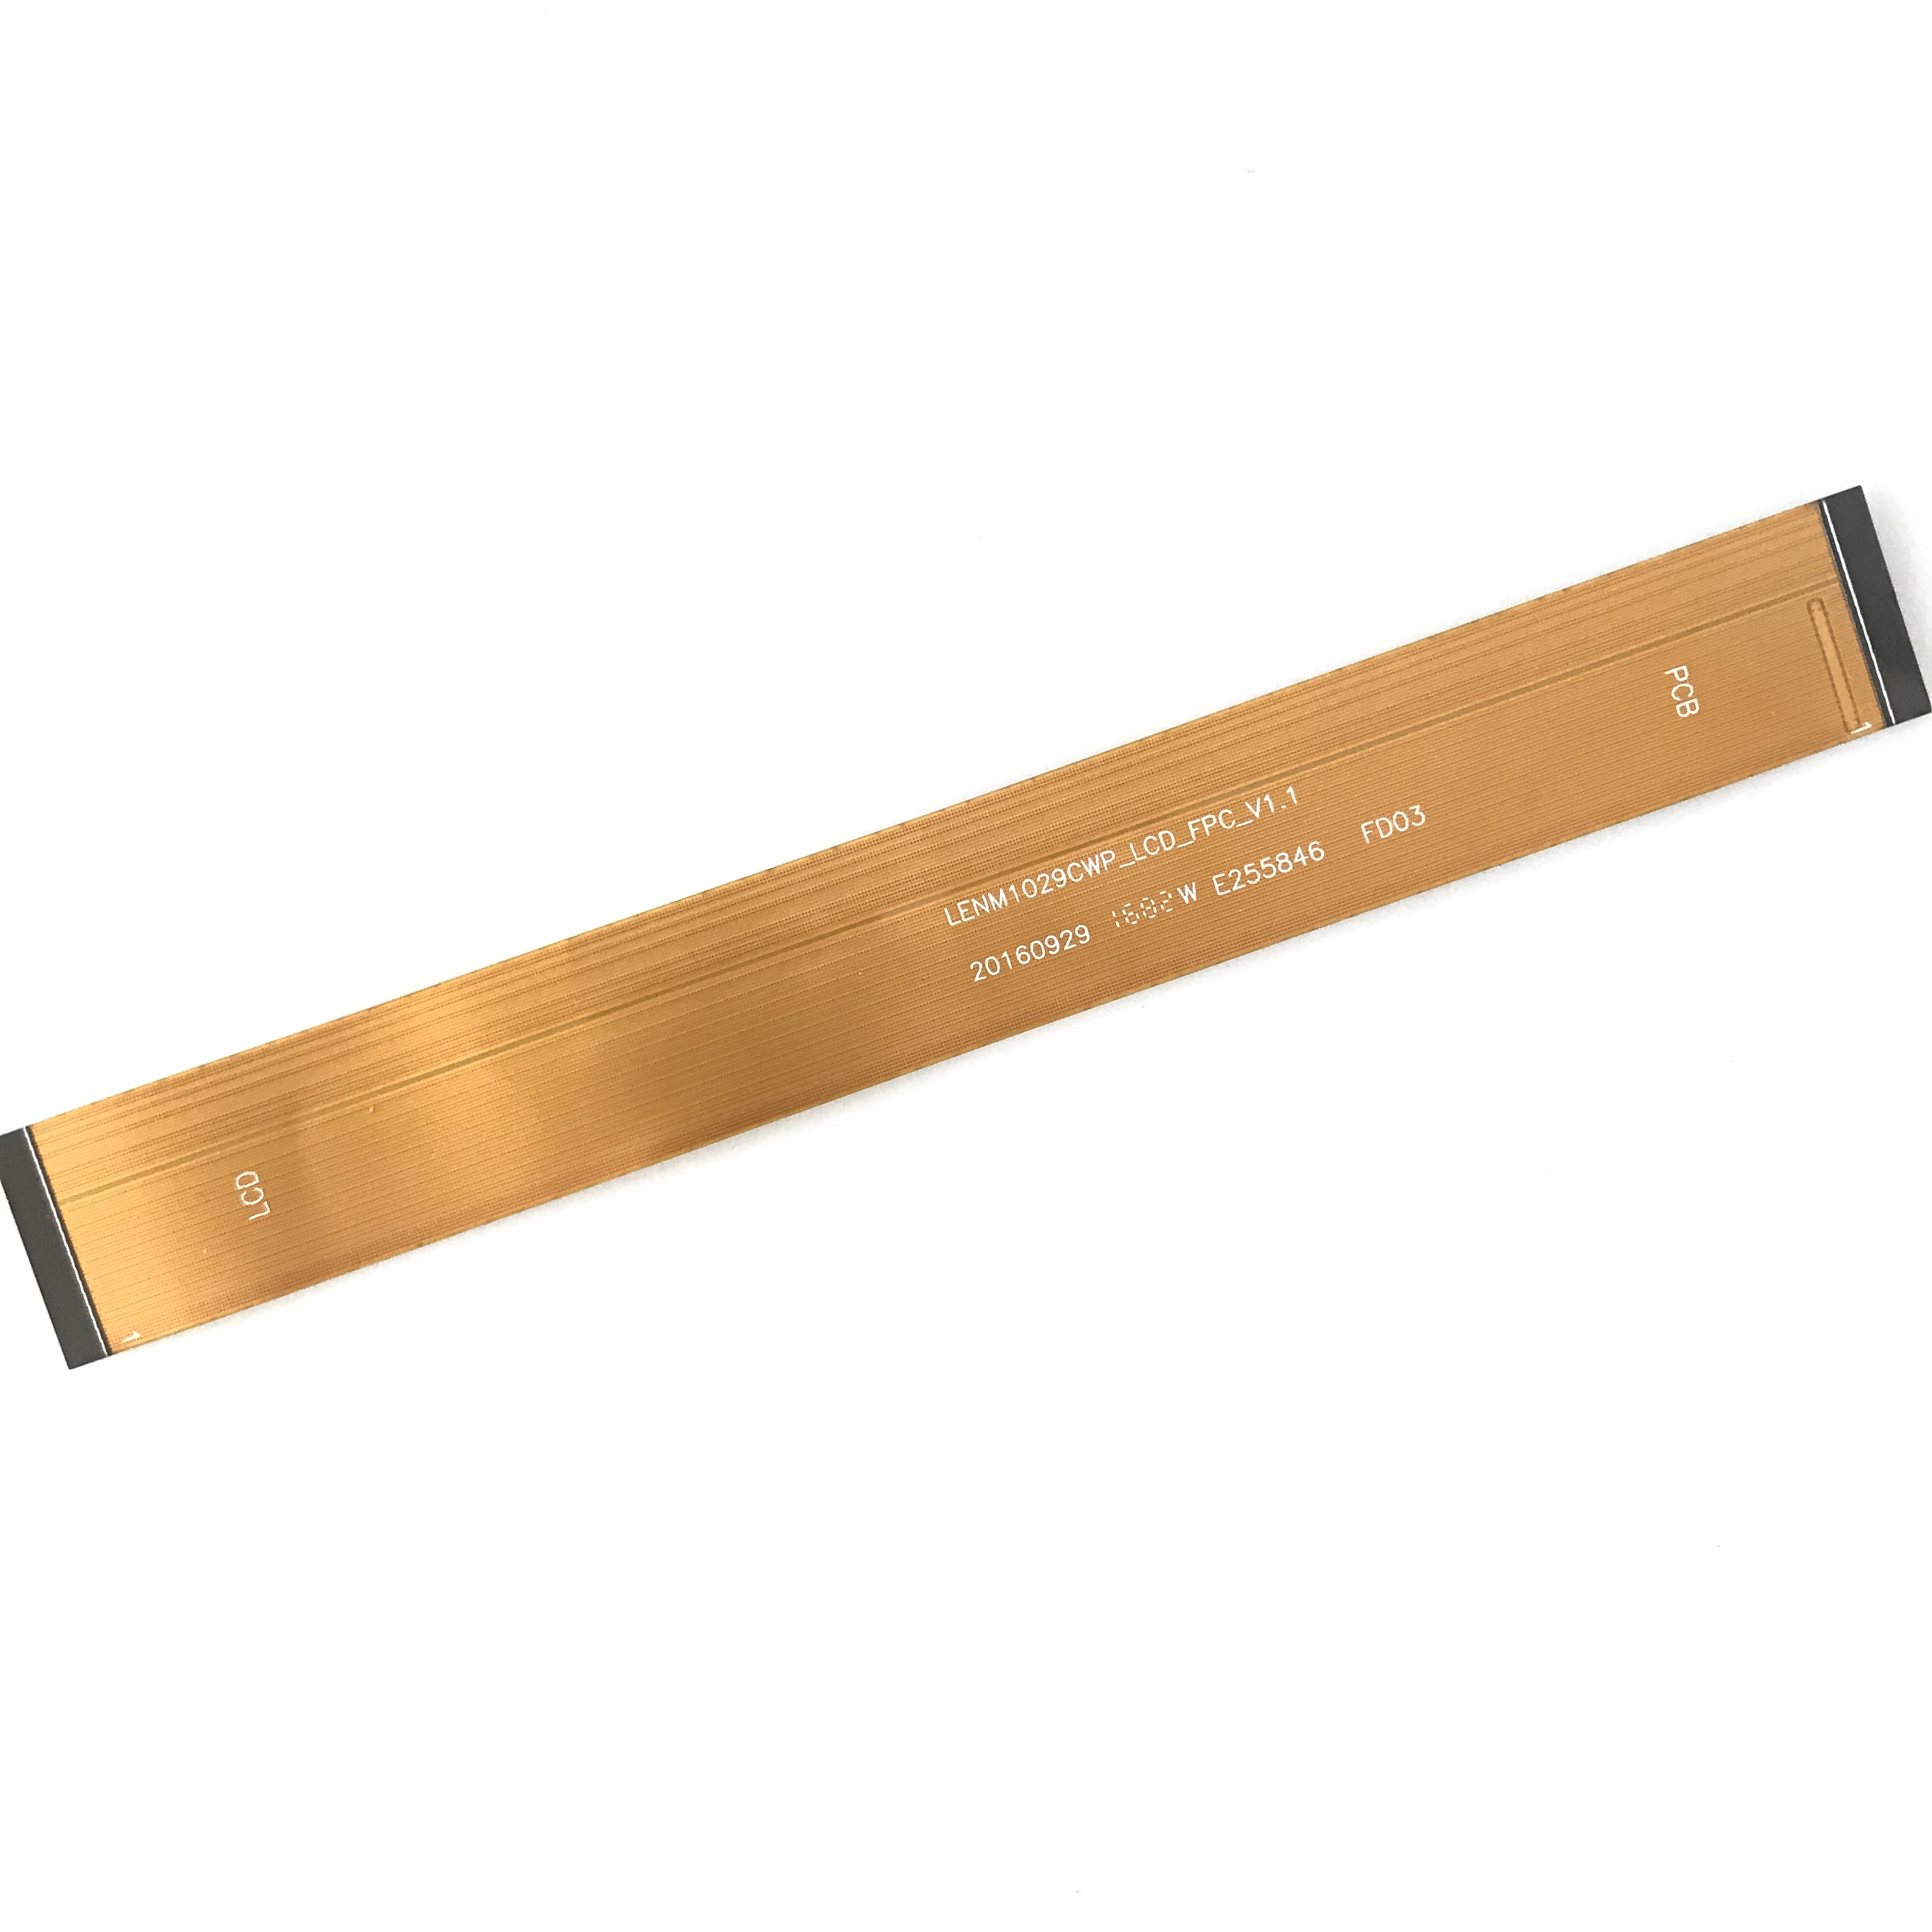 US $19 99 |LCD FPC Display Flex Cable For Lenovo Ideapad MIIX 310 10ICR-in  Mobile Phone Flex Cables from Cellphones & Telecommunications on